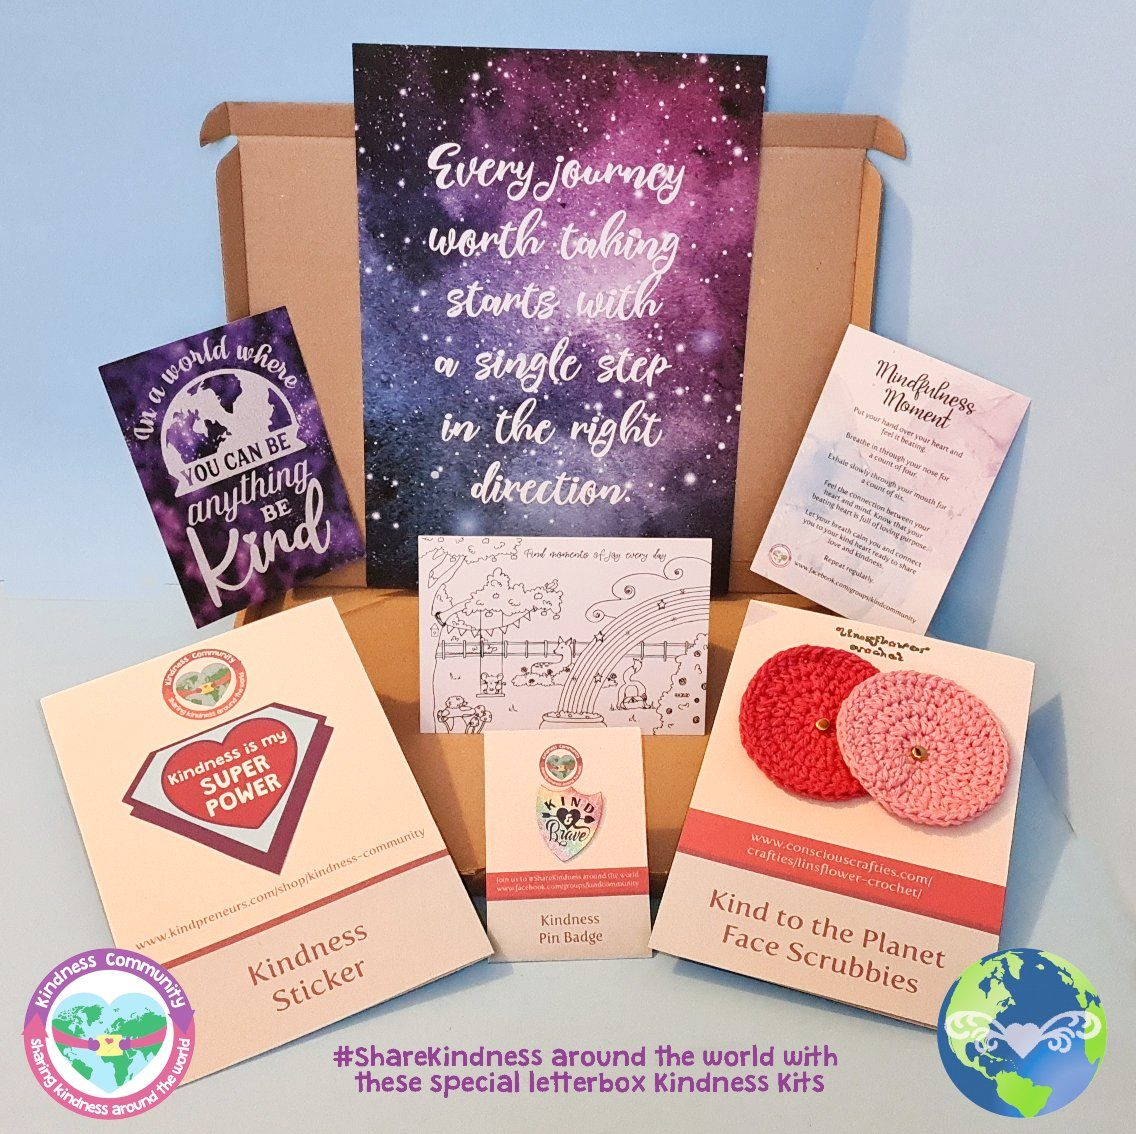 Kindness Kit Box 2 - Self Care Package Gift, Letterbox Friendly